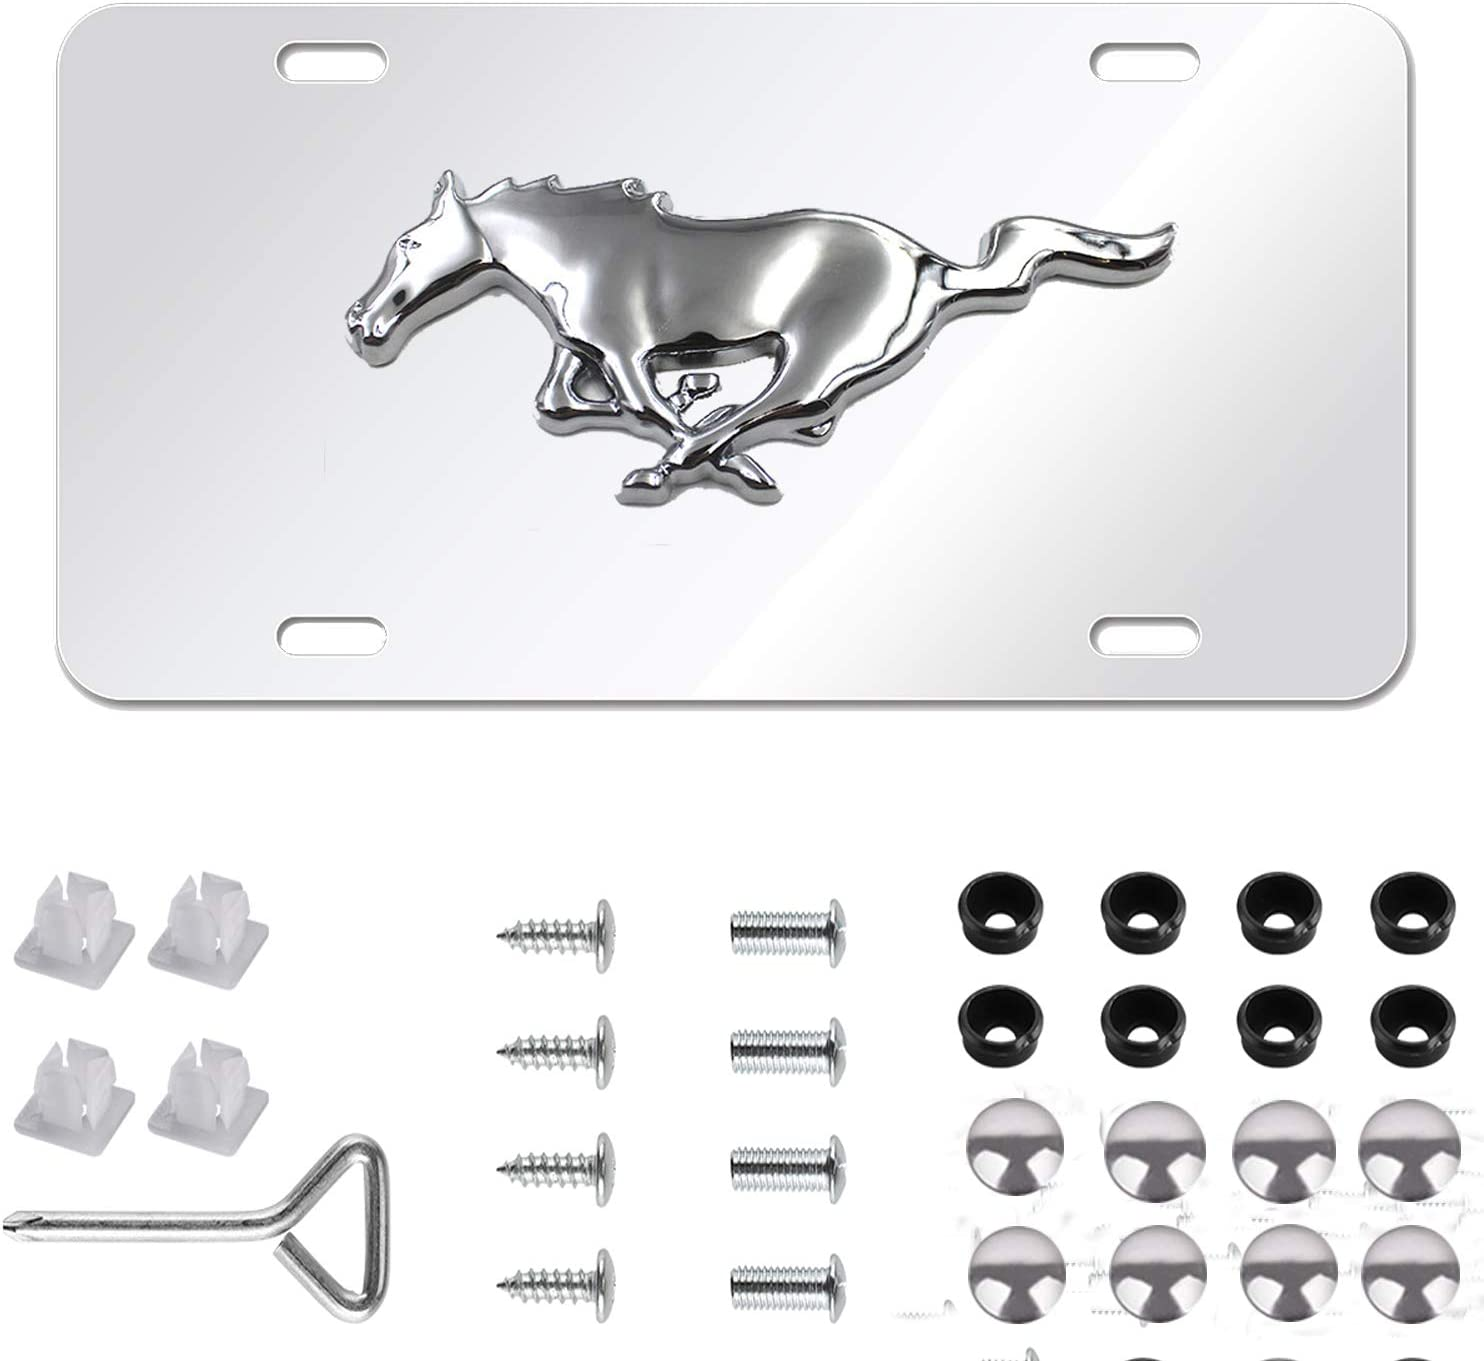 Mustang 3-D Pony Metal Logo Silver Mirror Stainless Steel Front License Plate Cover,with Screw Caps Cover Set Suit for Ford Mustang.